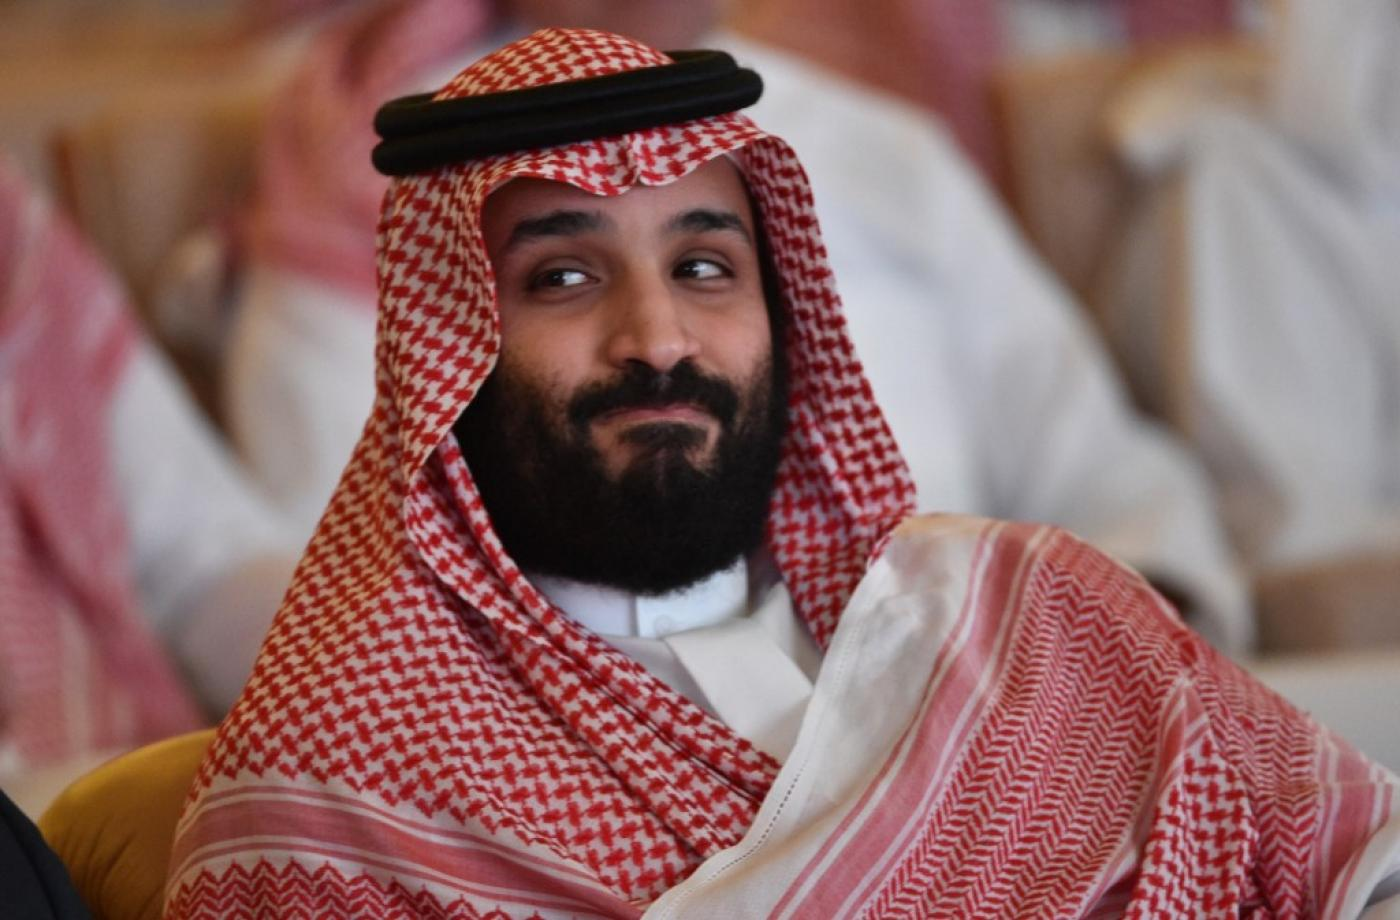 EXCLUSIVE: Mohammed bin Salman pulls out of planned meeting in Washington  with Netanyahu | Middle East Eye